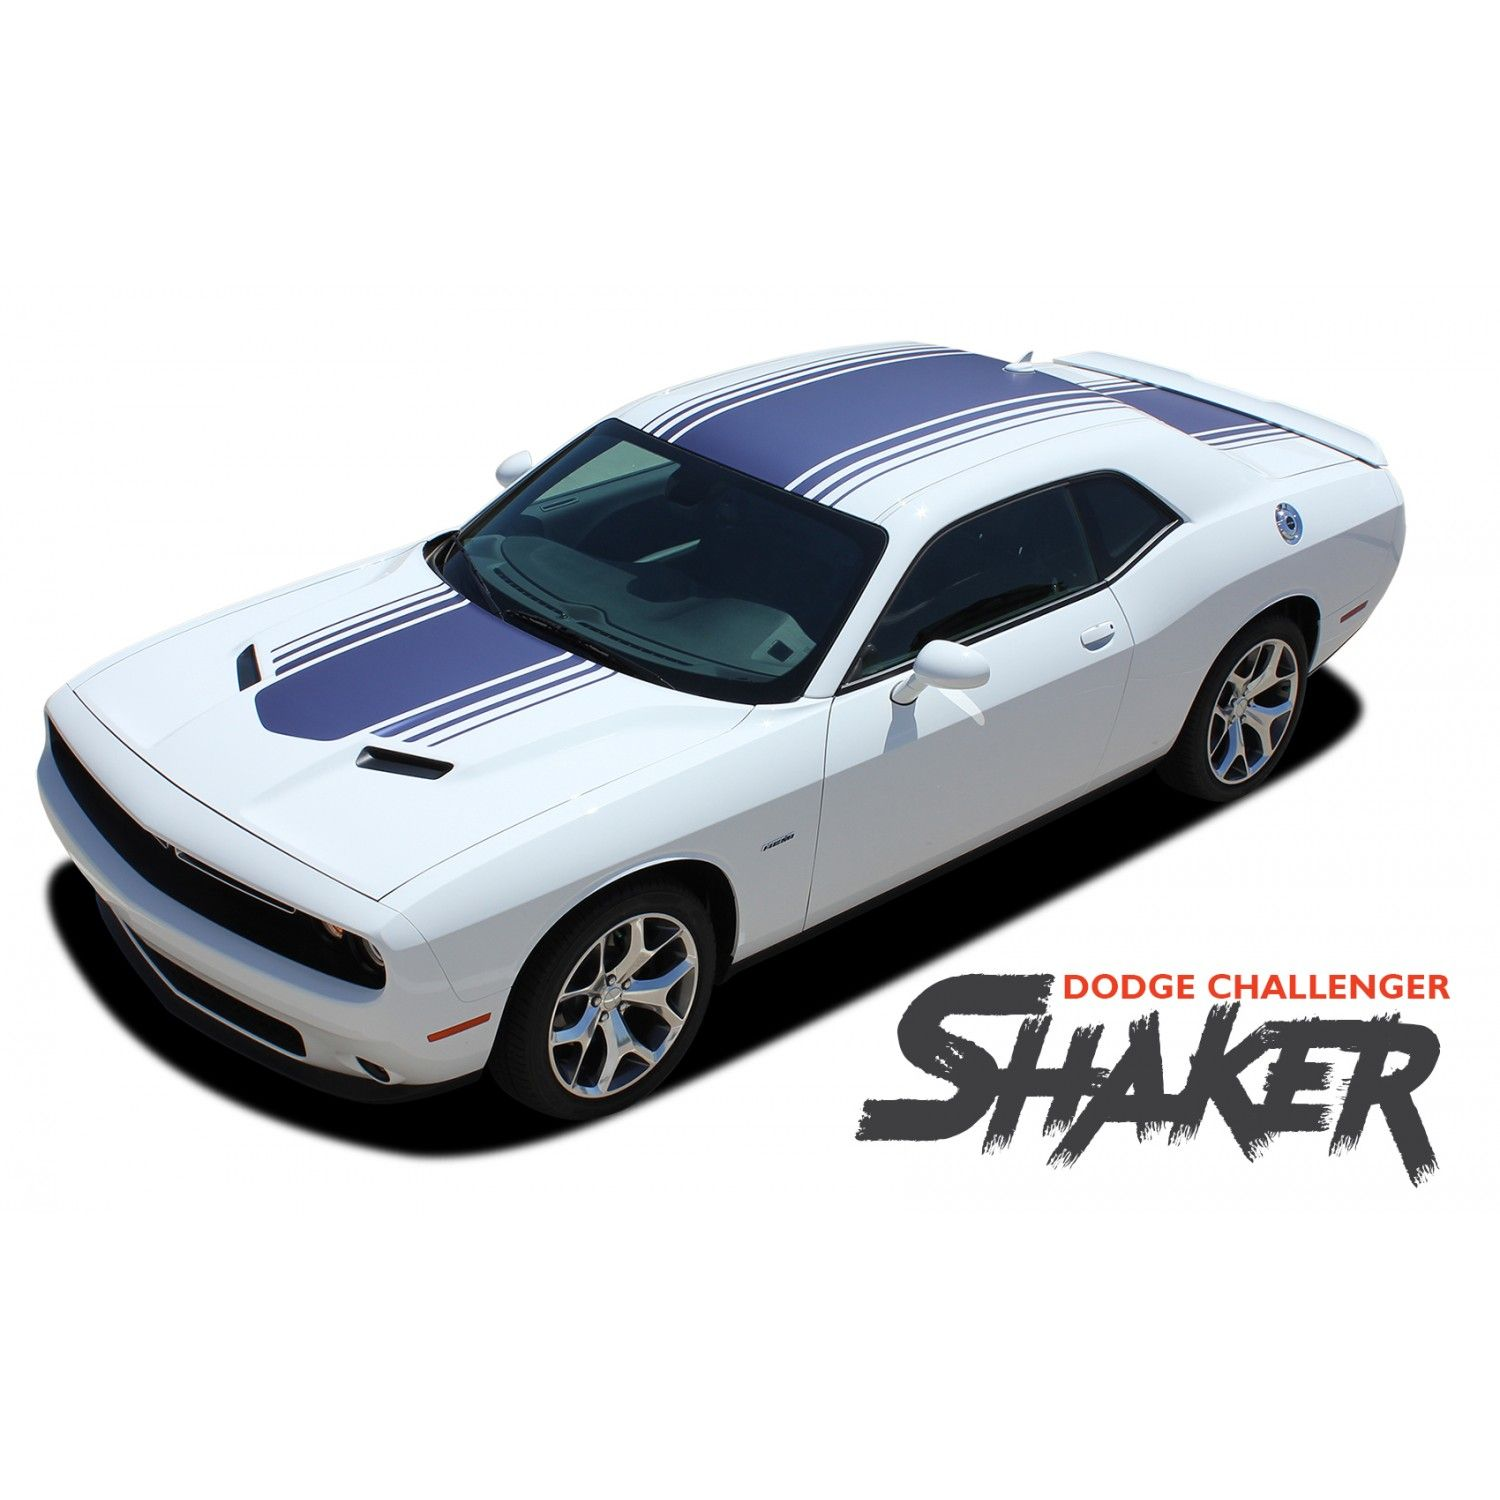 Dodge Challenger Shaker Factory Oem Shaker Hood Roof Trunk Vinyl Rally Stripe Kit For 2015 2016 2017 2018 2019 2020 2021 Rally Stripes Stripe Kit Dodge Challenger